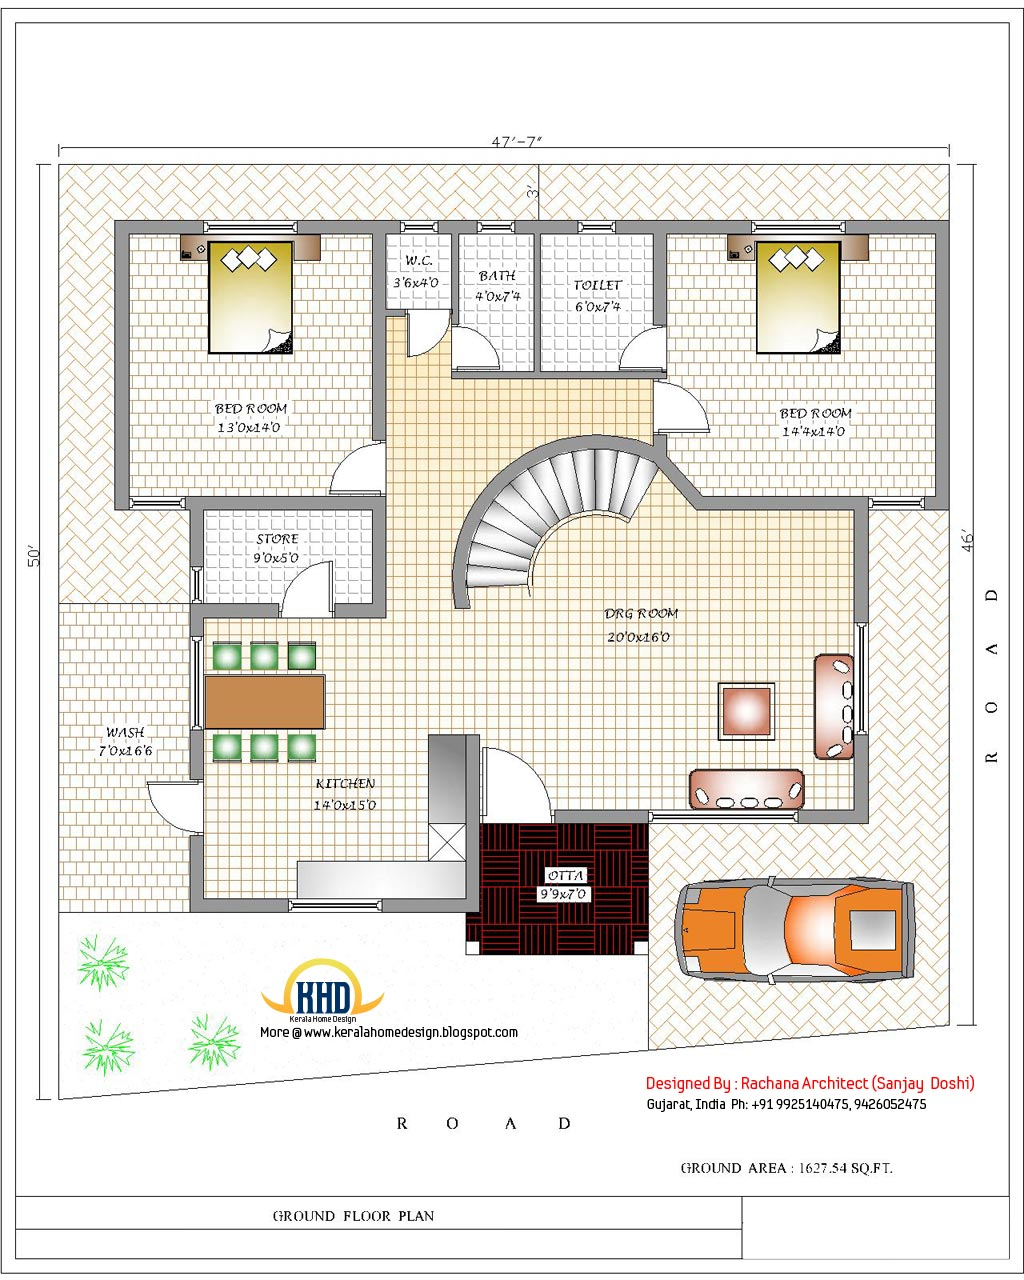 ... with house plans - 3200 Sq.Ft. - Kerala home design and floor plans